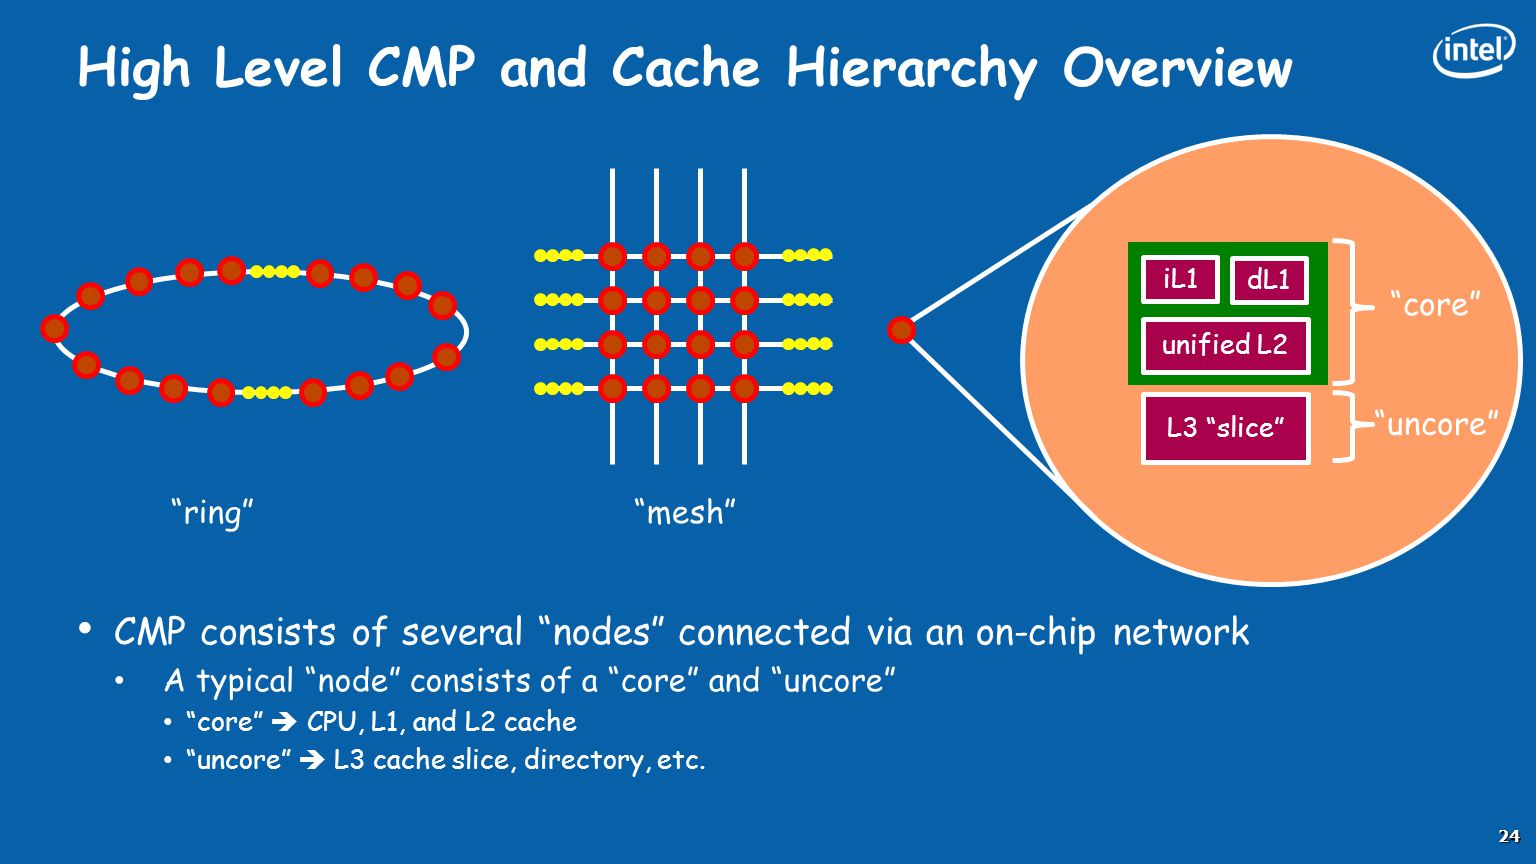 High Level CMP and Cache Hierarchy Overview